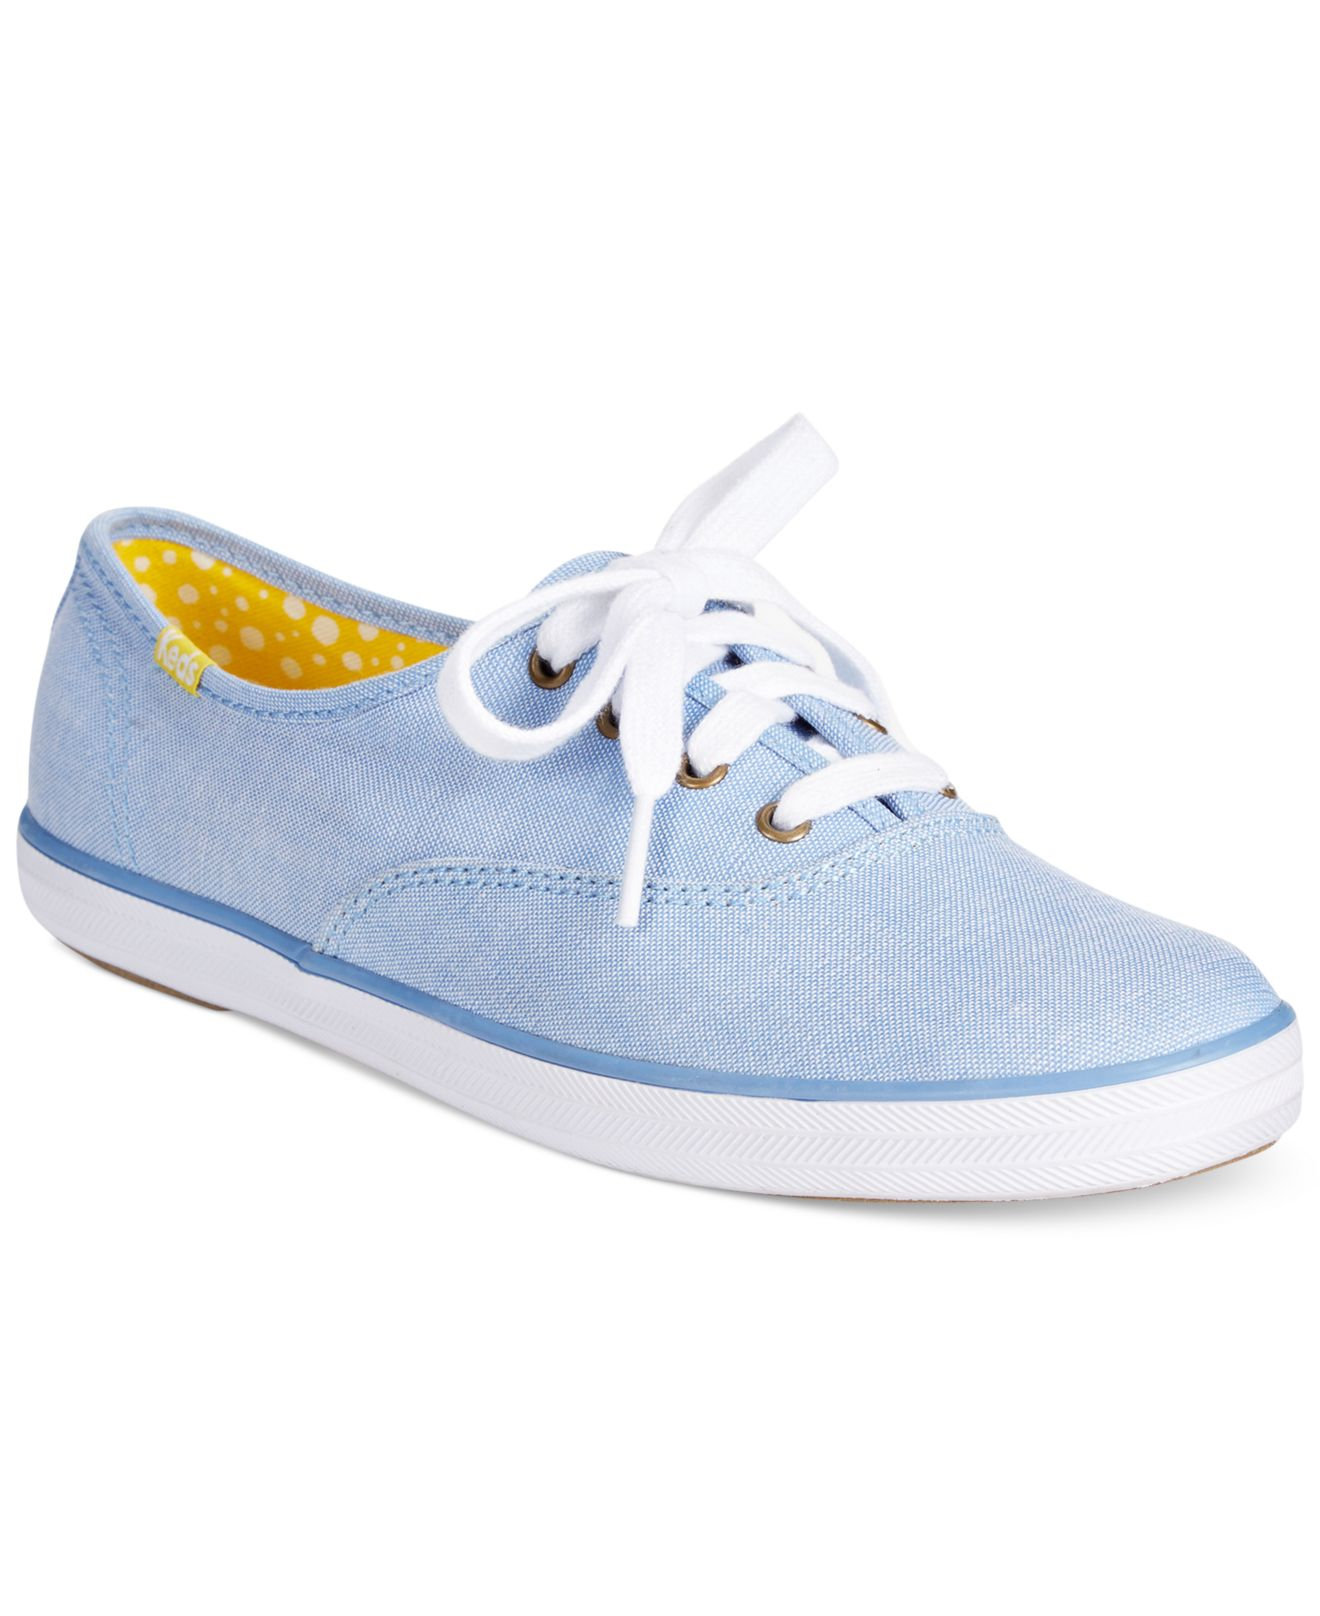 e7f3c86c6e7ae1 Lyst - Keds Women s Spring Champion Oxford Sneakers in Blue